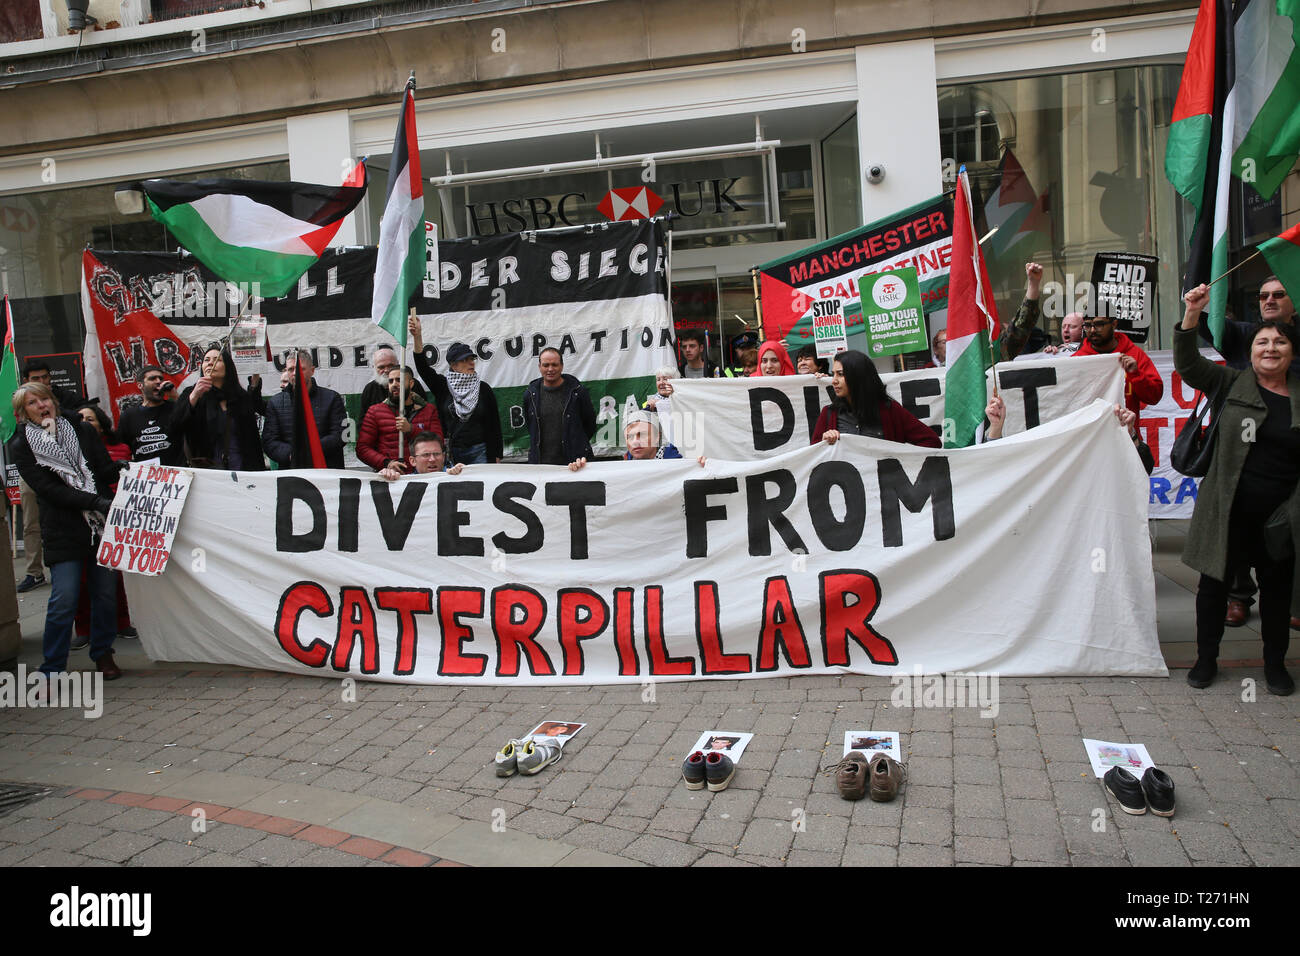 Manchester, UK. 30th March 2019. A rally and march for Palestine demanding 'freedom, justice and equality' for the Palestinian people.  March 30th is Palestinian Land Day, when Palestinians across the world remember the protesters killed in the struggles. Today also marks the 1st anniversary of the start of the Great Return March. Pro Palestinian campaigners arranged the solidarity march protesting outside Barclays and HSBC Banks calling on them to divest from doing business with companies selling military equipment and technology which they say are used in human rights violations.  Manchester - Stock Image